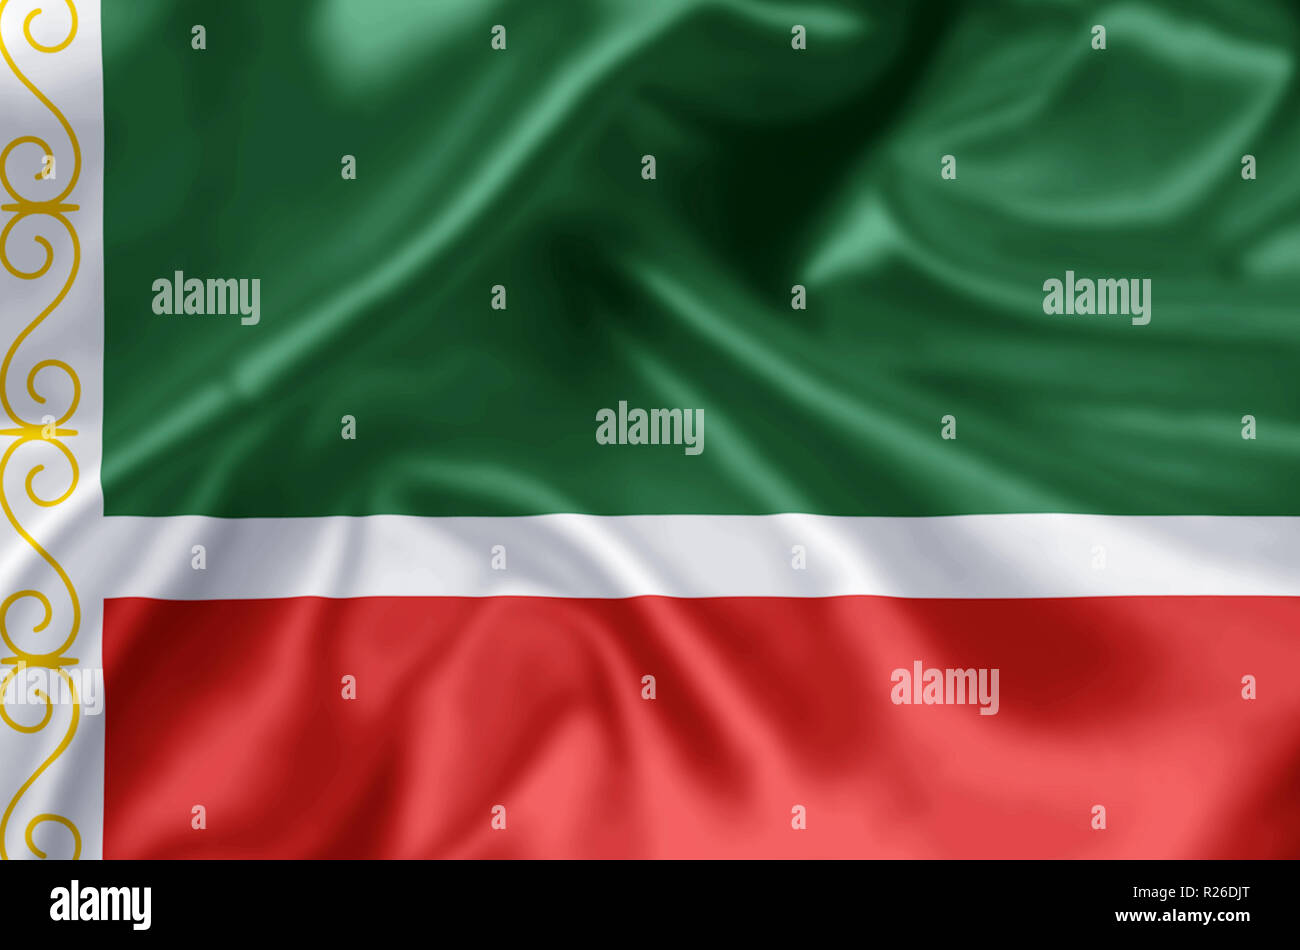 The Chechen Republic waving and closeup flag illustration. Perfect for background or texture purposes. Stock Photo